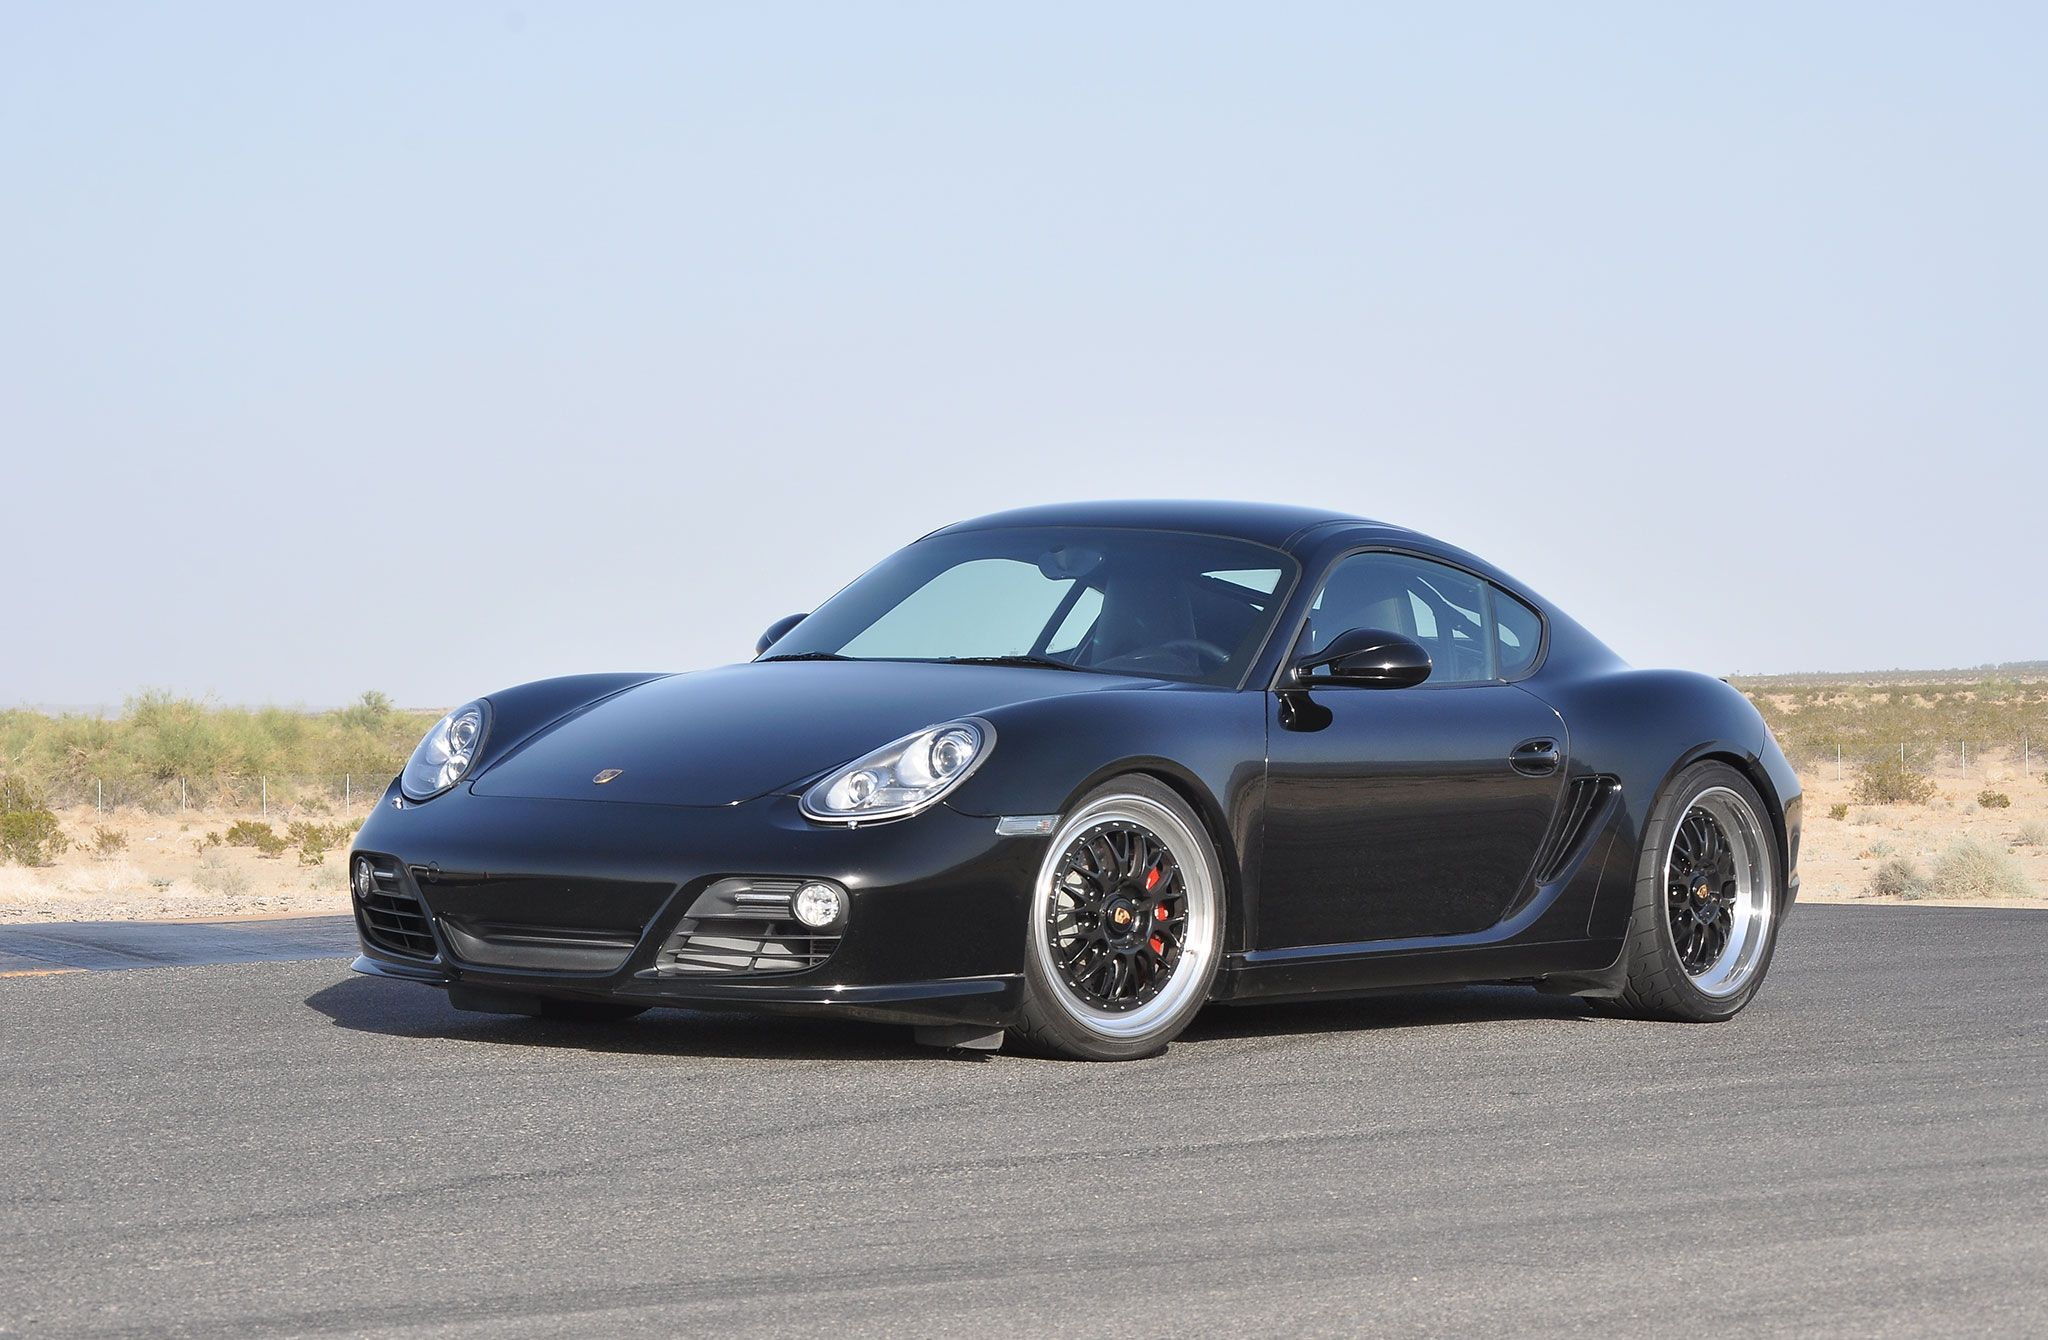 Porsche Cayman S 2009 photo - 1